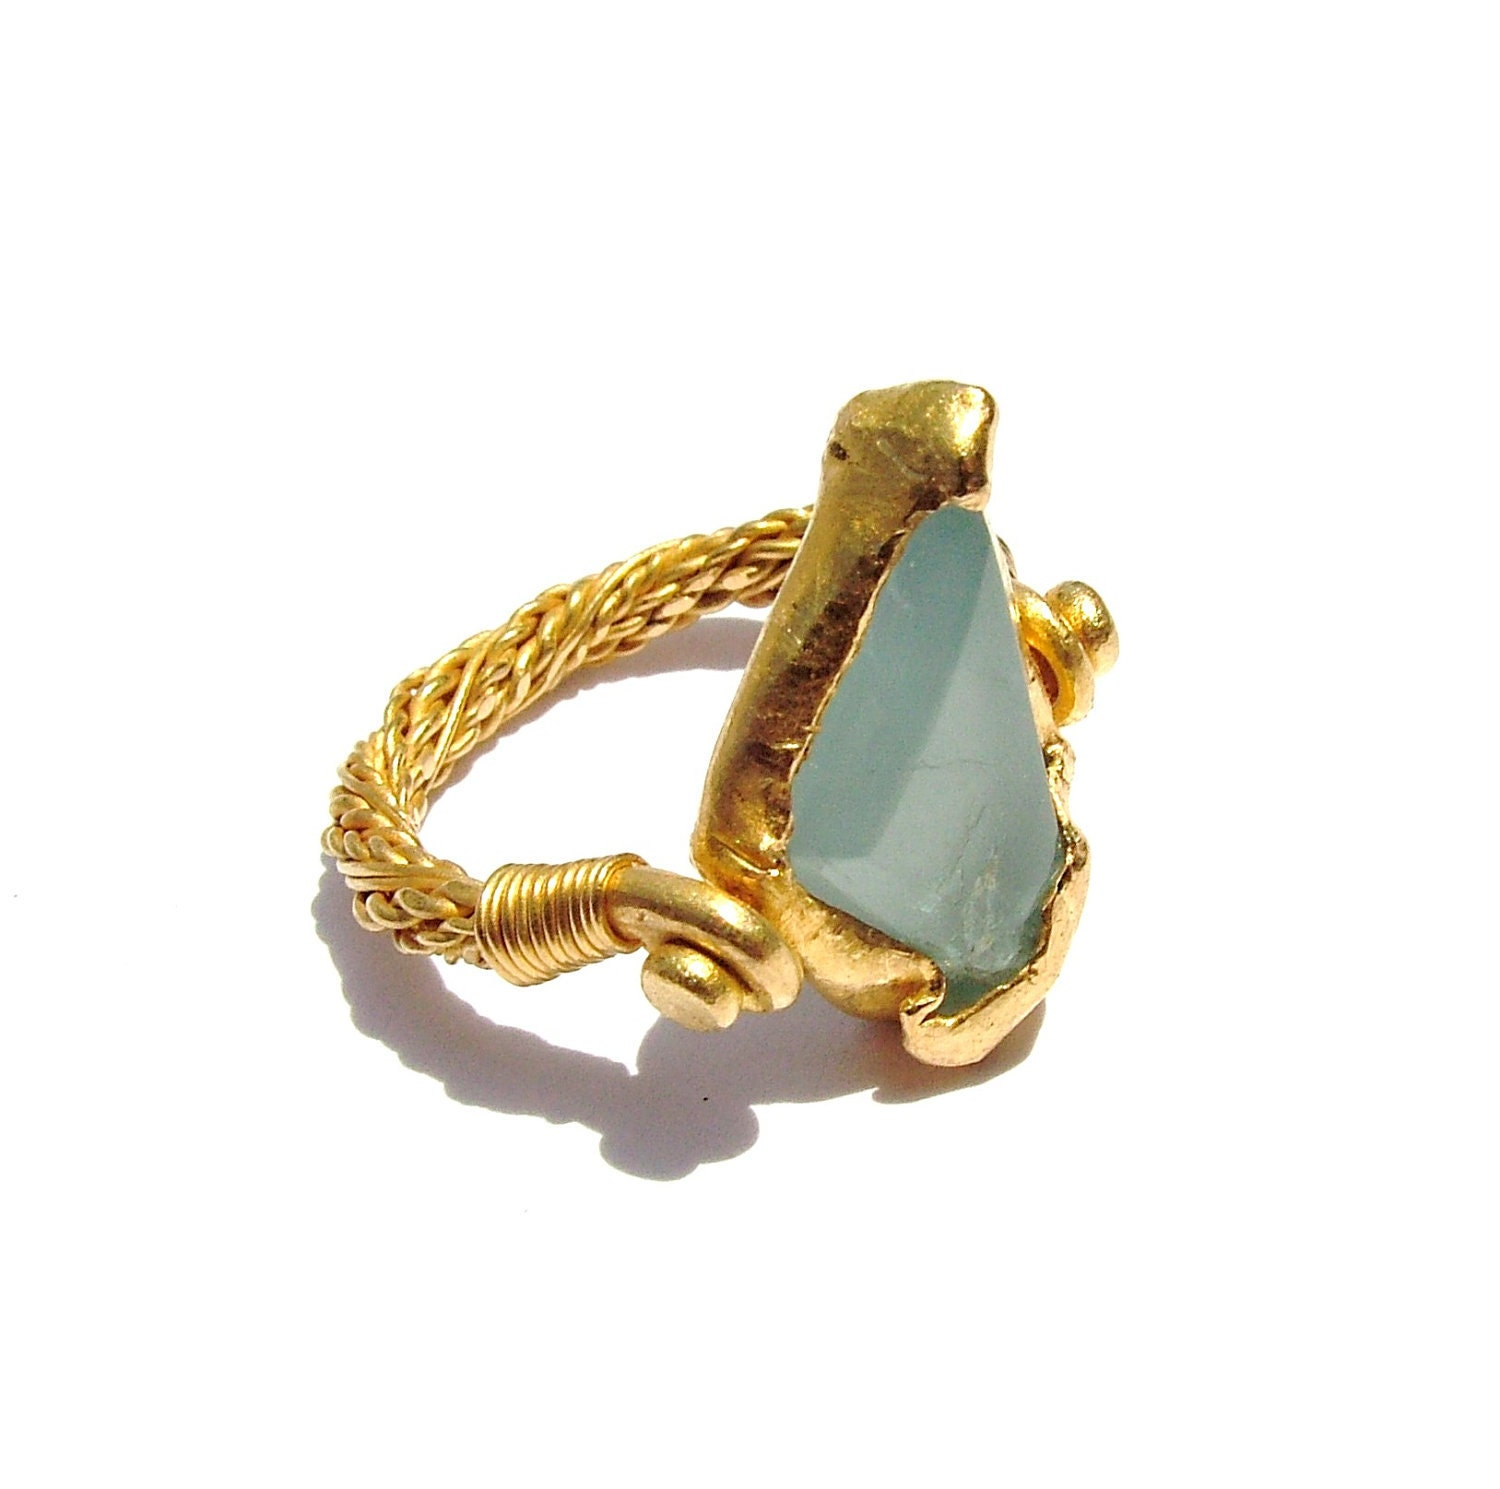 22K gold, Silky Aqua marine free form ring twisted wires rope band